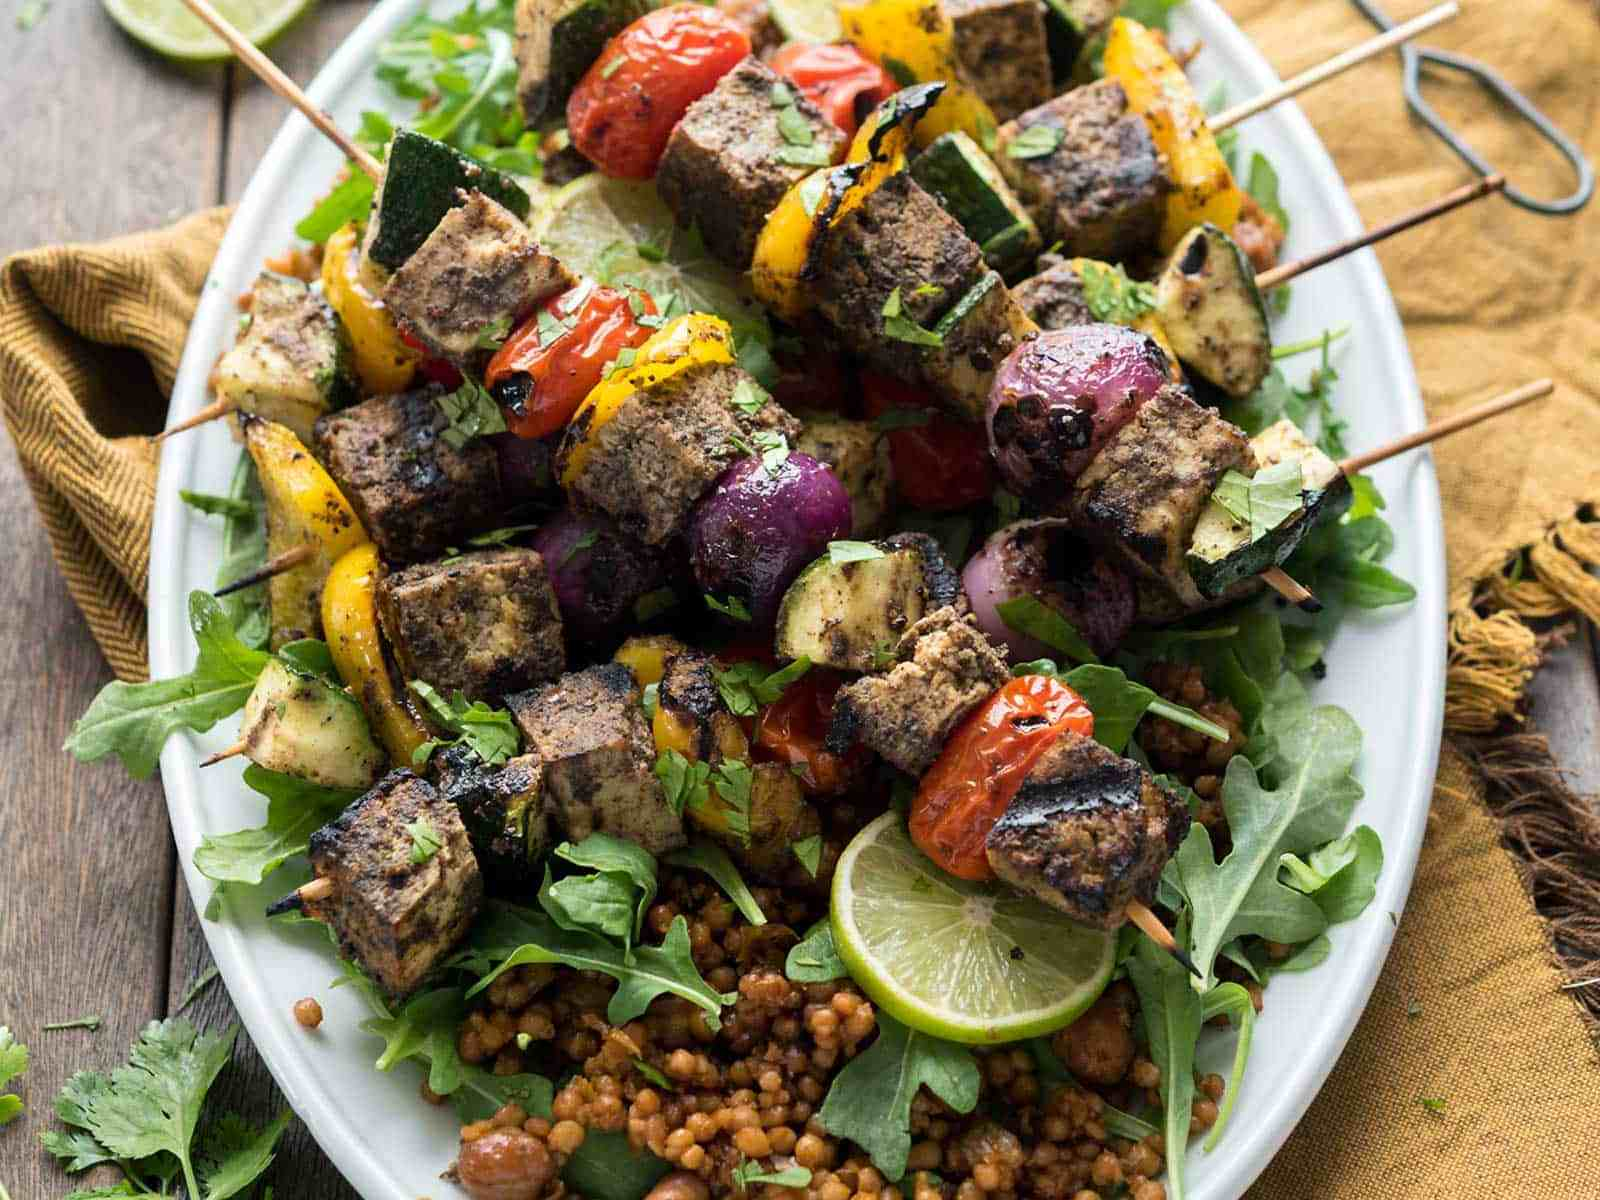 Grilled Tofu Shawarma Skewers! Perfect for Summer grilling, easy-to-make with Wild Garden's marinade. Vegan, Gluten-free #veganyackattack #wildgardeneats